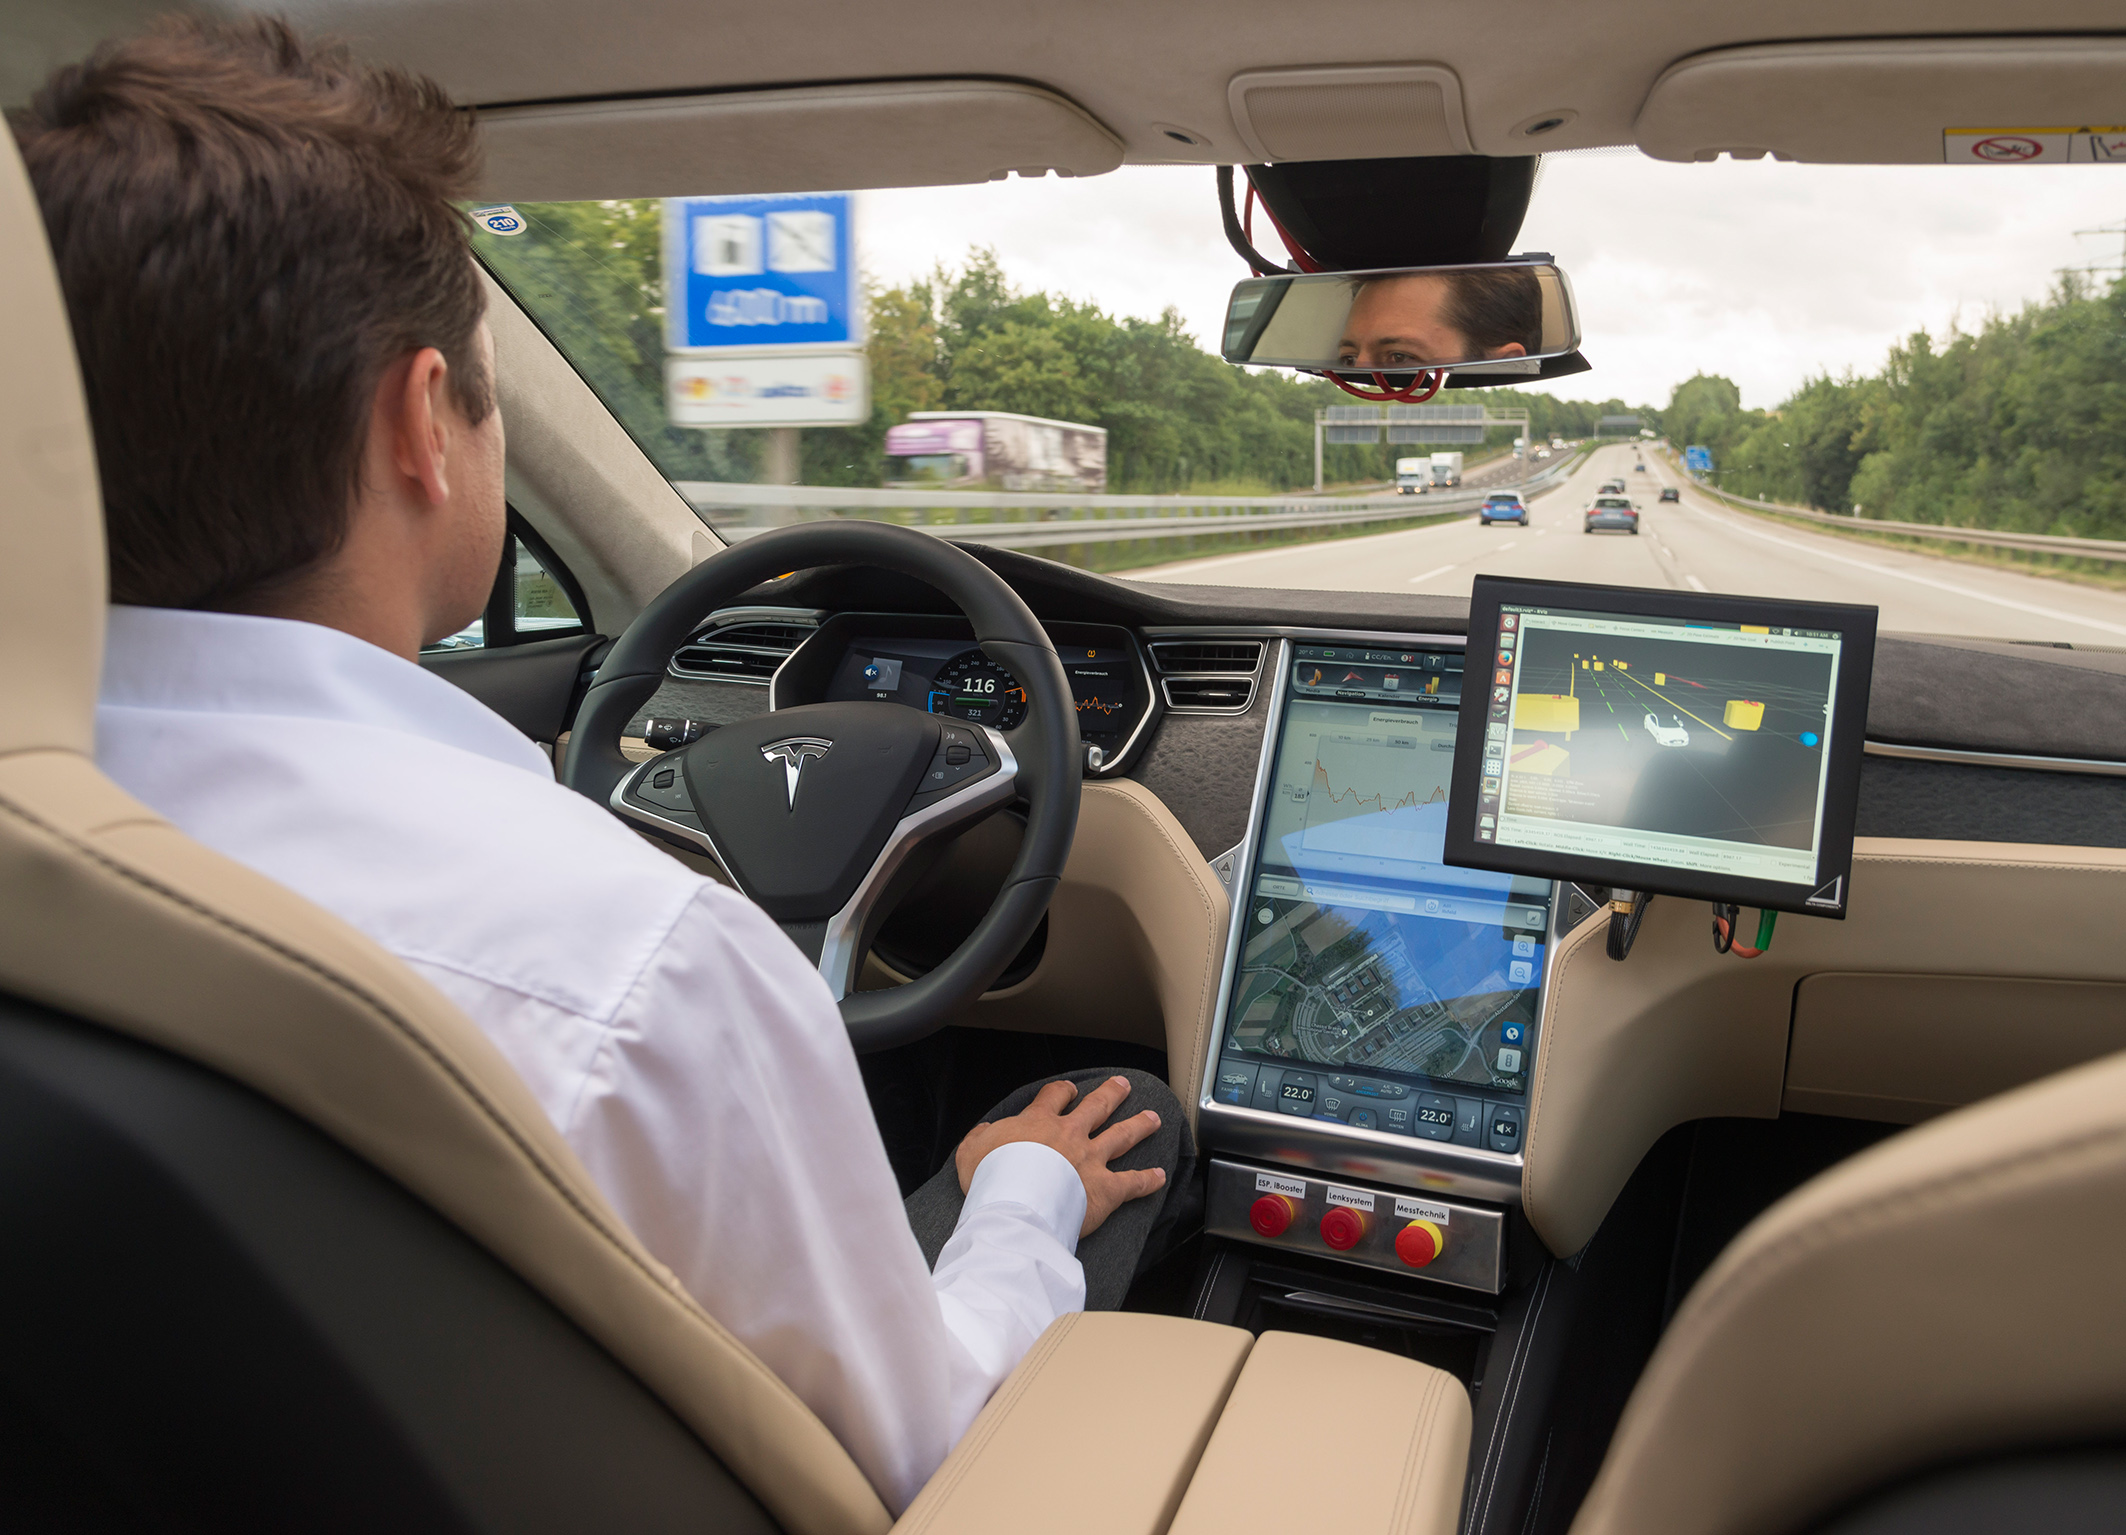 Bosch started testing automated driving on public roads at the beginning of 2013. The latest test vehicles are based on the Tesla Model S.